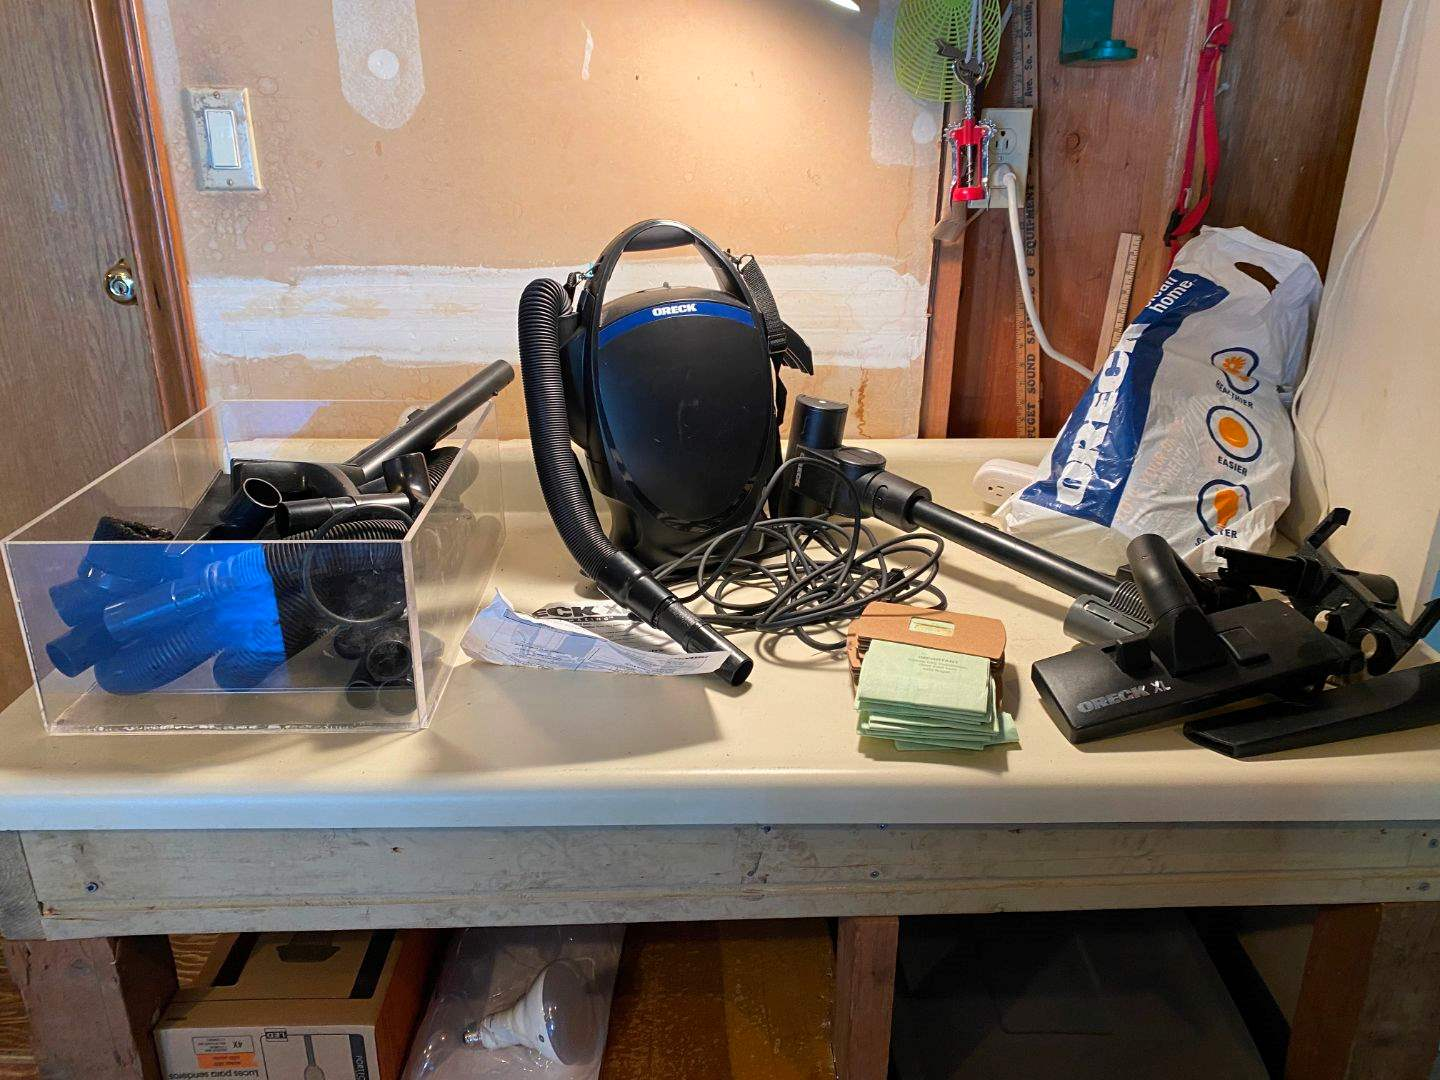 Lot # 233 - Small Oreck Vacuum Cleaner w/ Accessories. (main image)